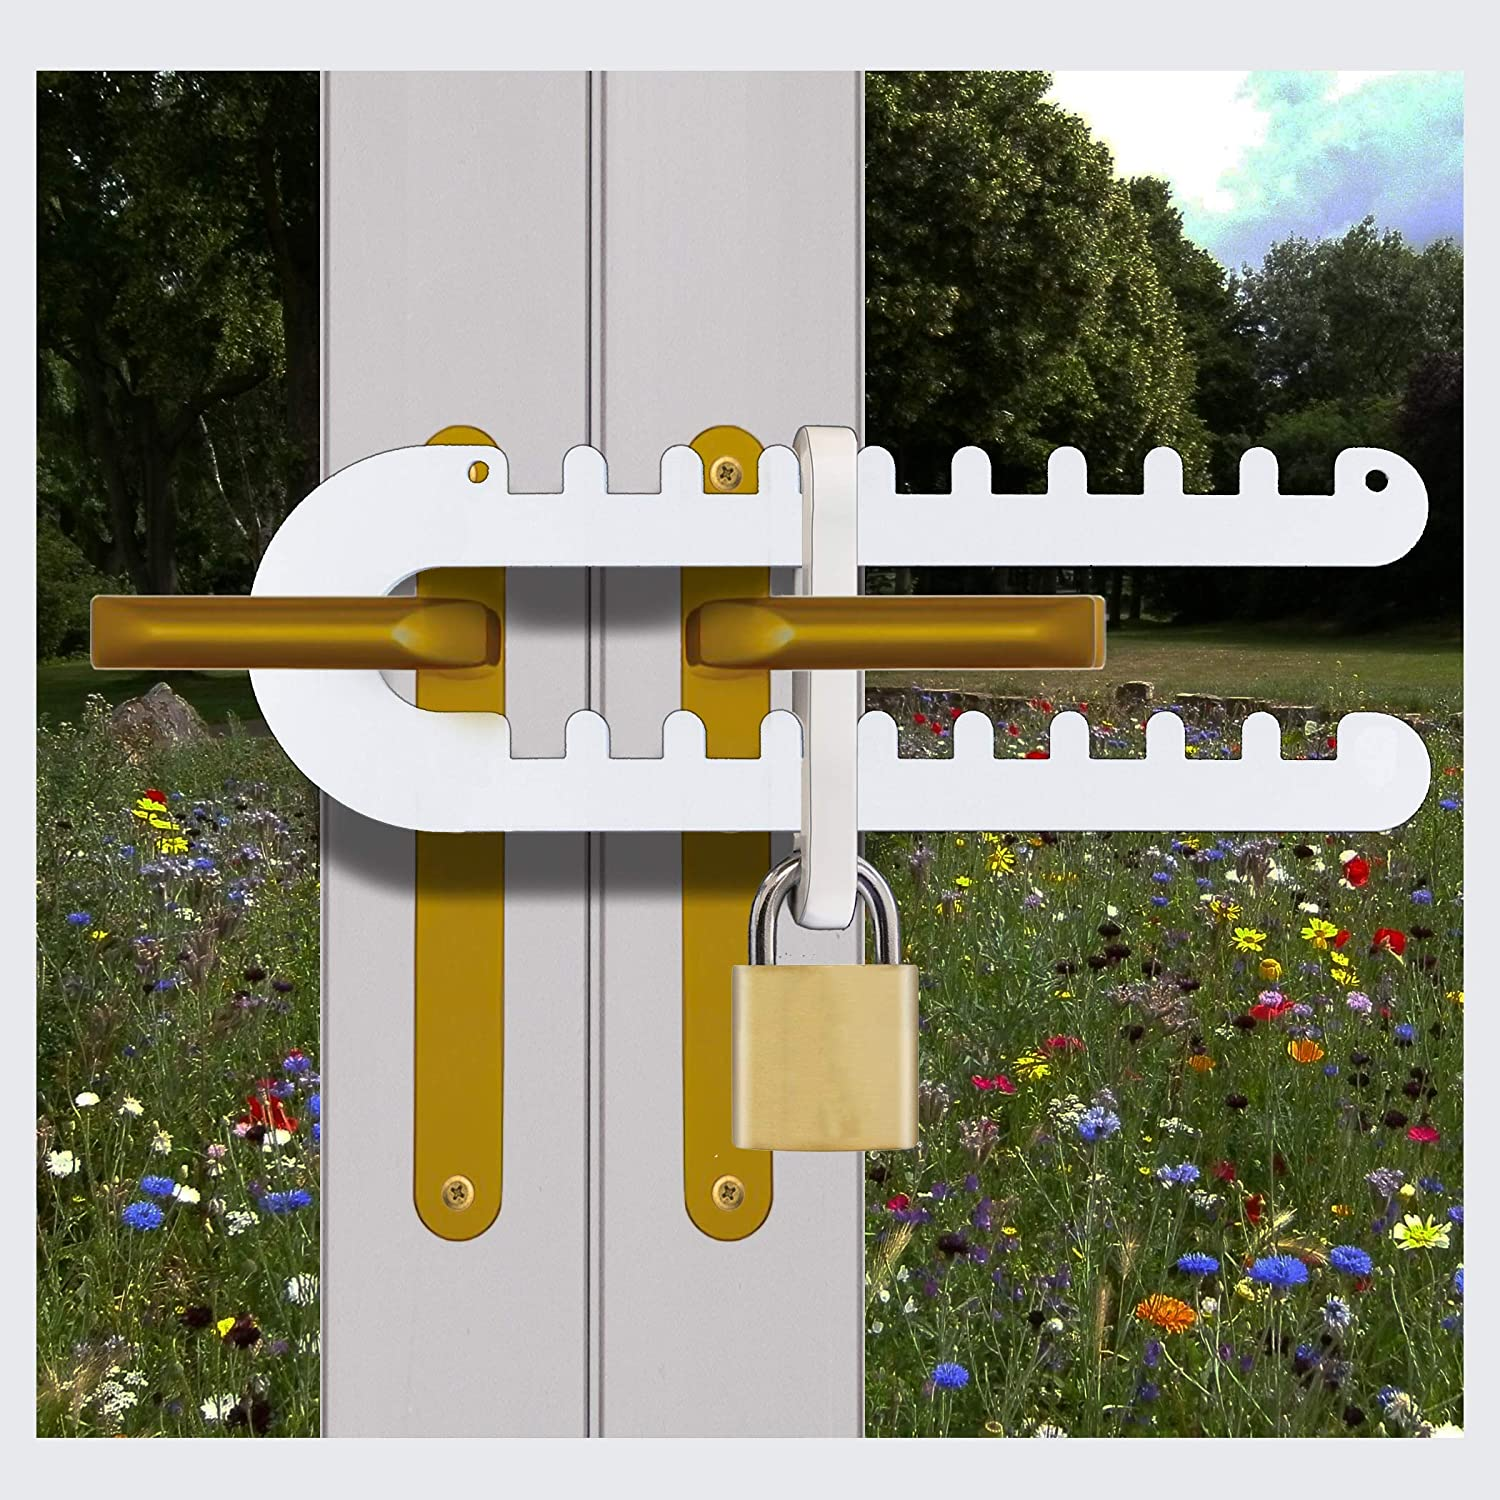 Tough & Easy French Patio Door Lock for Double Door Handle 'P', D' or  Standard Handles High Security Deadlock Also Fits Sliding Handles Visible  from